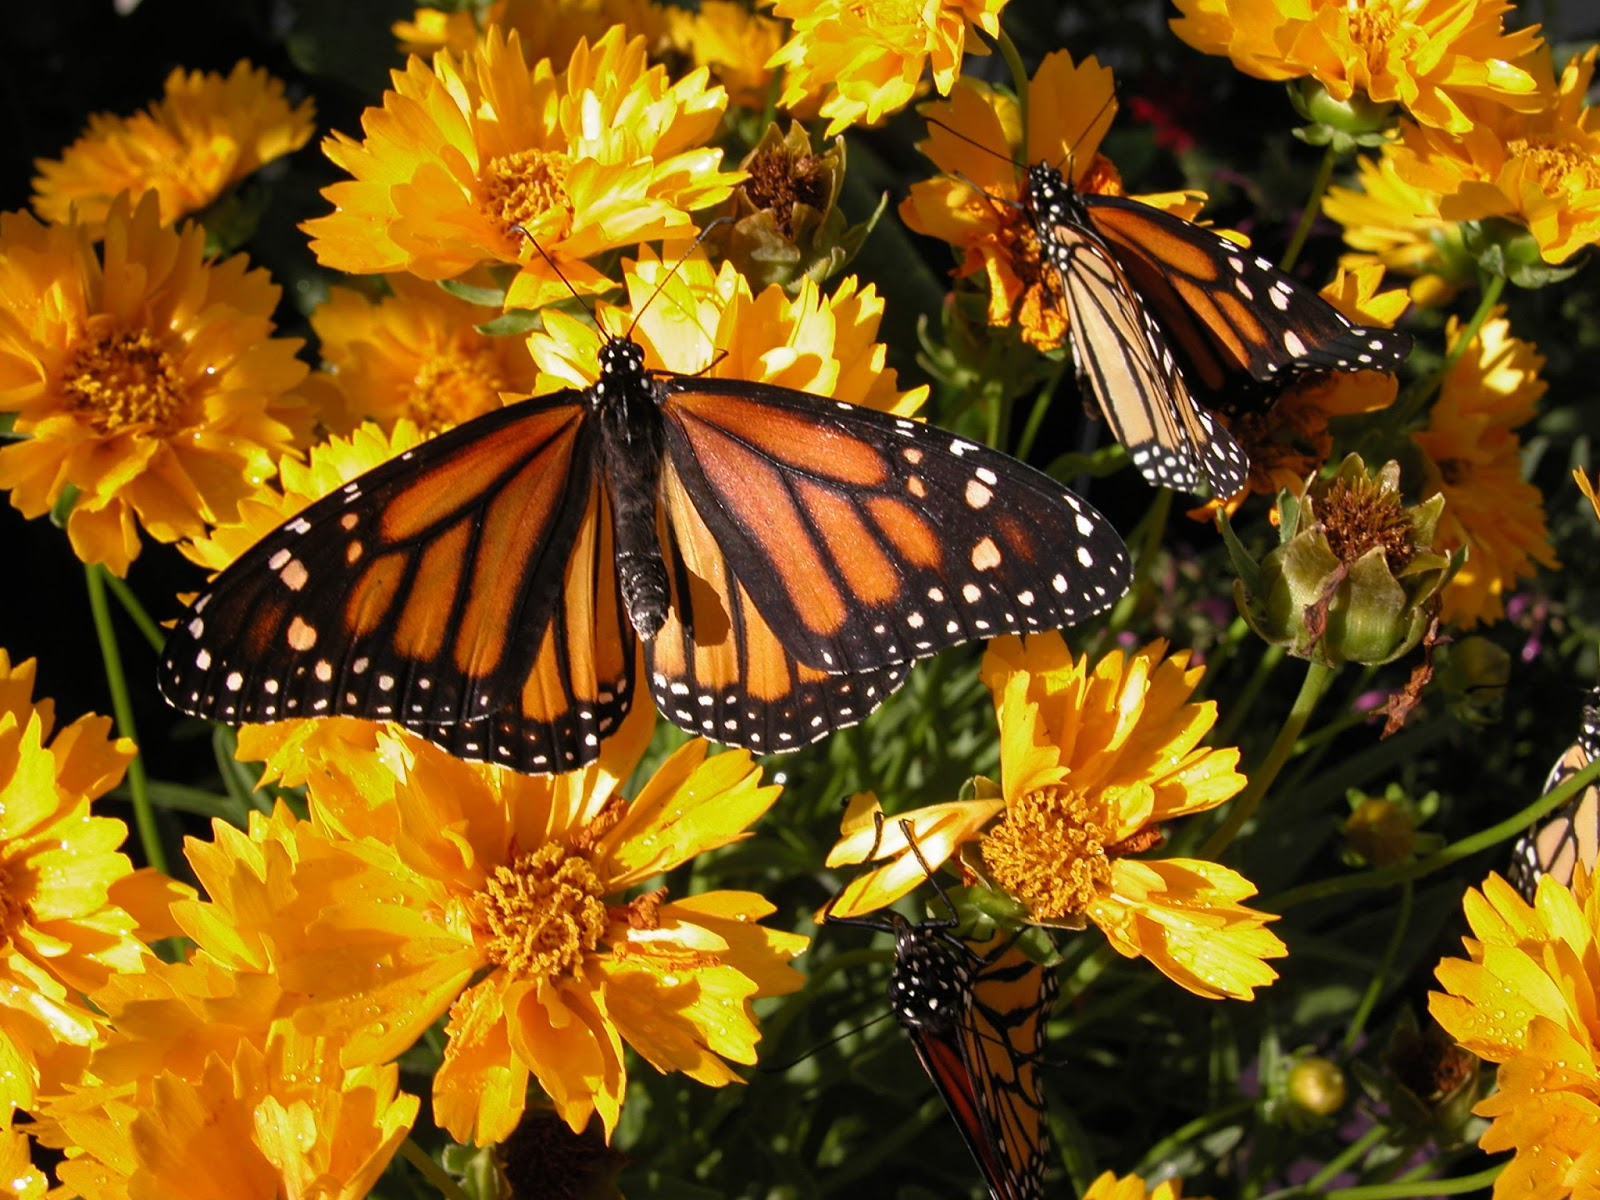 The King of Butterflies – The Monarch Butterfly